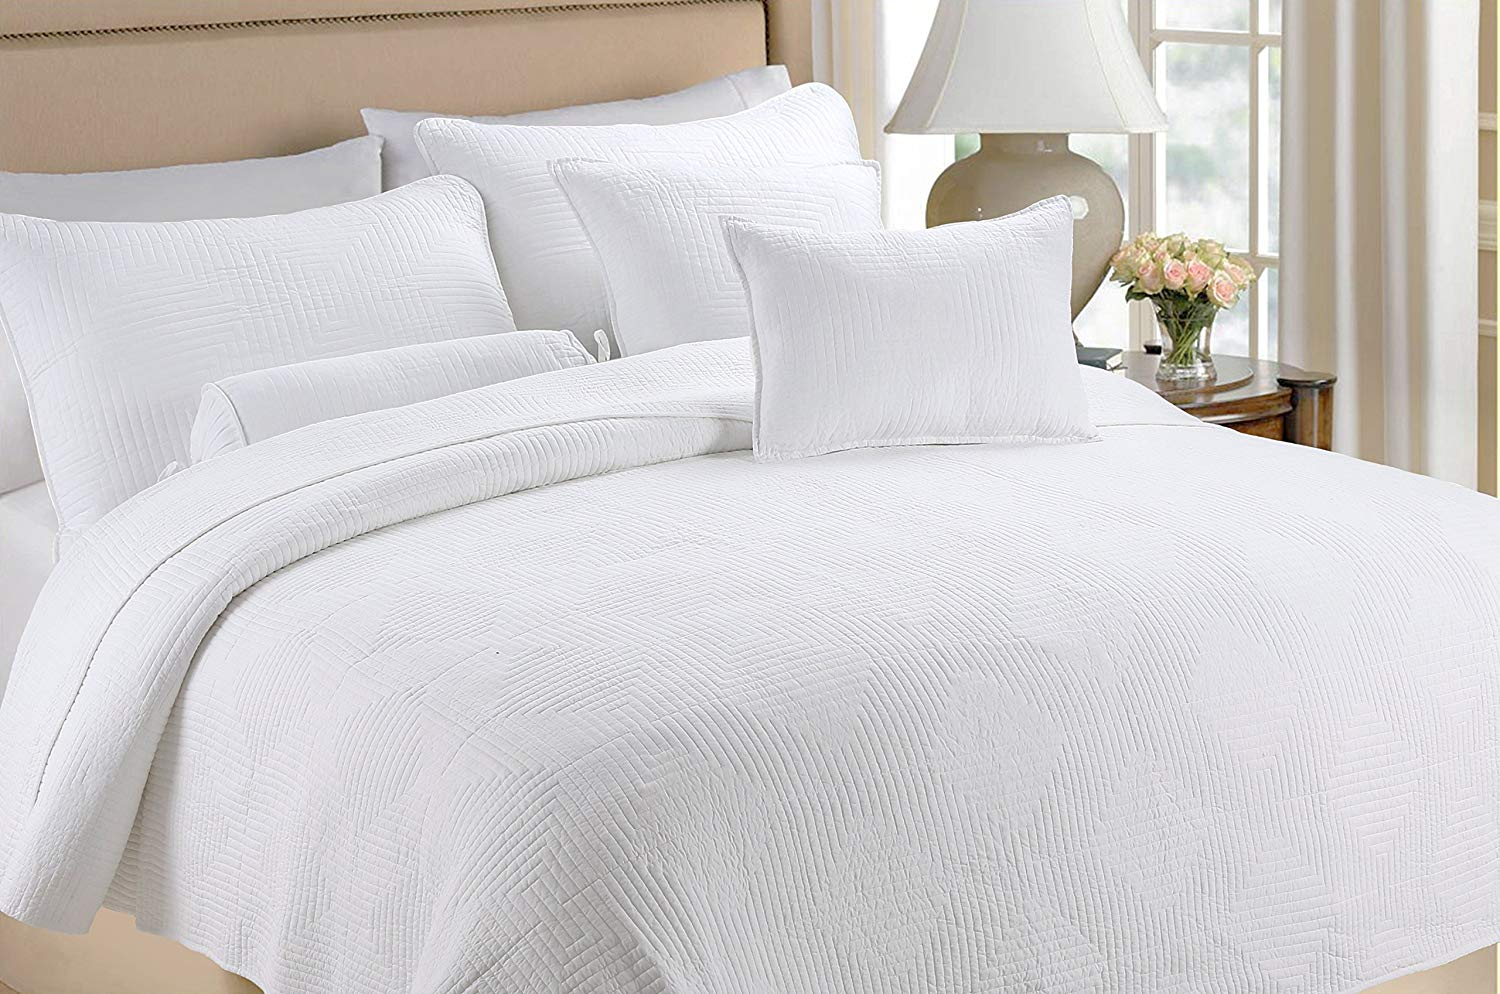 Cozy Line Home Fashions 100% COTTON Solid White Maze Hotel Quilt Set, Reversible Bedding Bedspread Coverlet,For Bedroom/Guestroom (Maze - White, Queen - 3 piece)